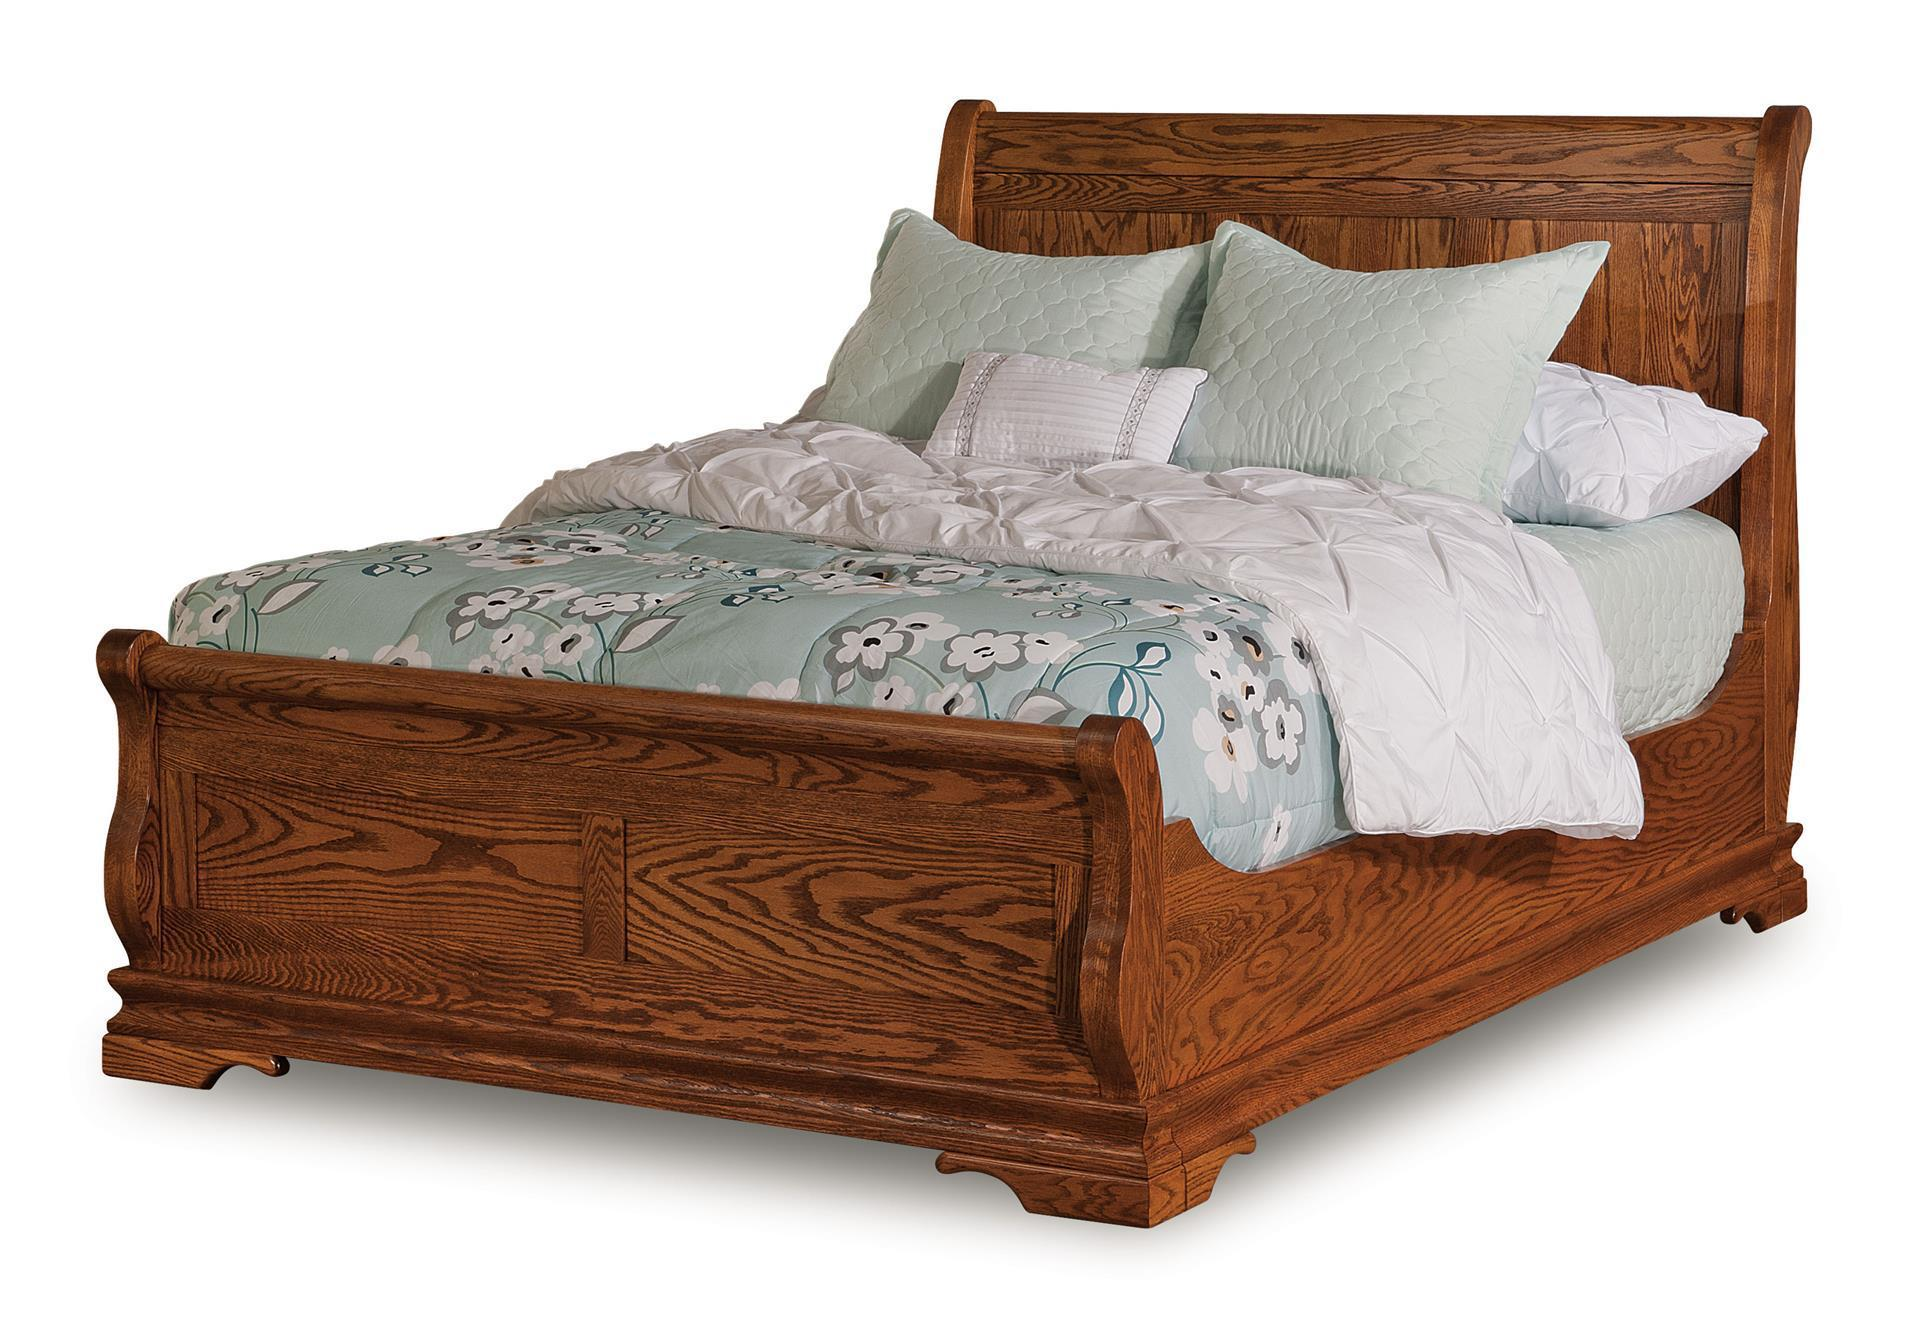 Amish Chippewa Sleigh Bed From Dutchcrafters Amish Furniture